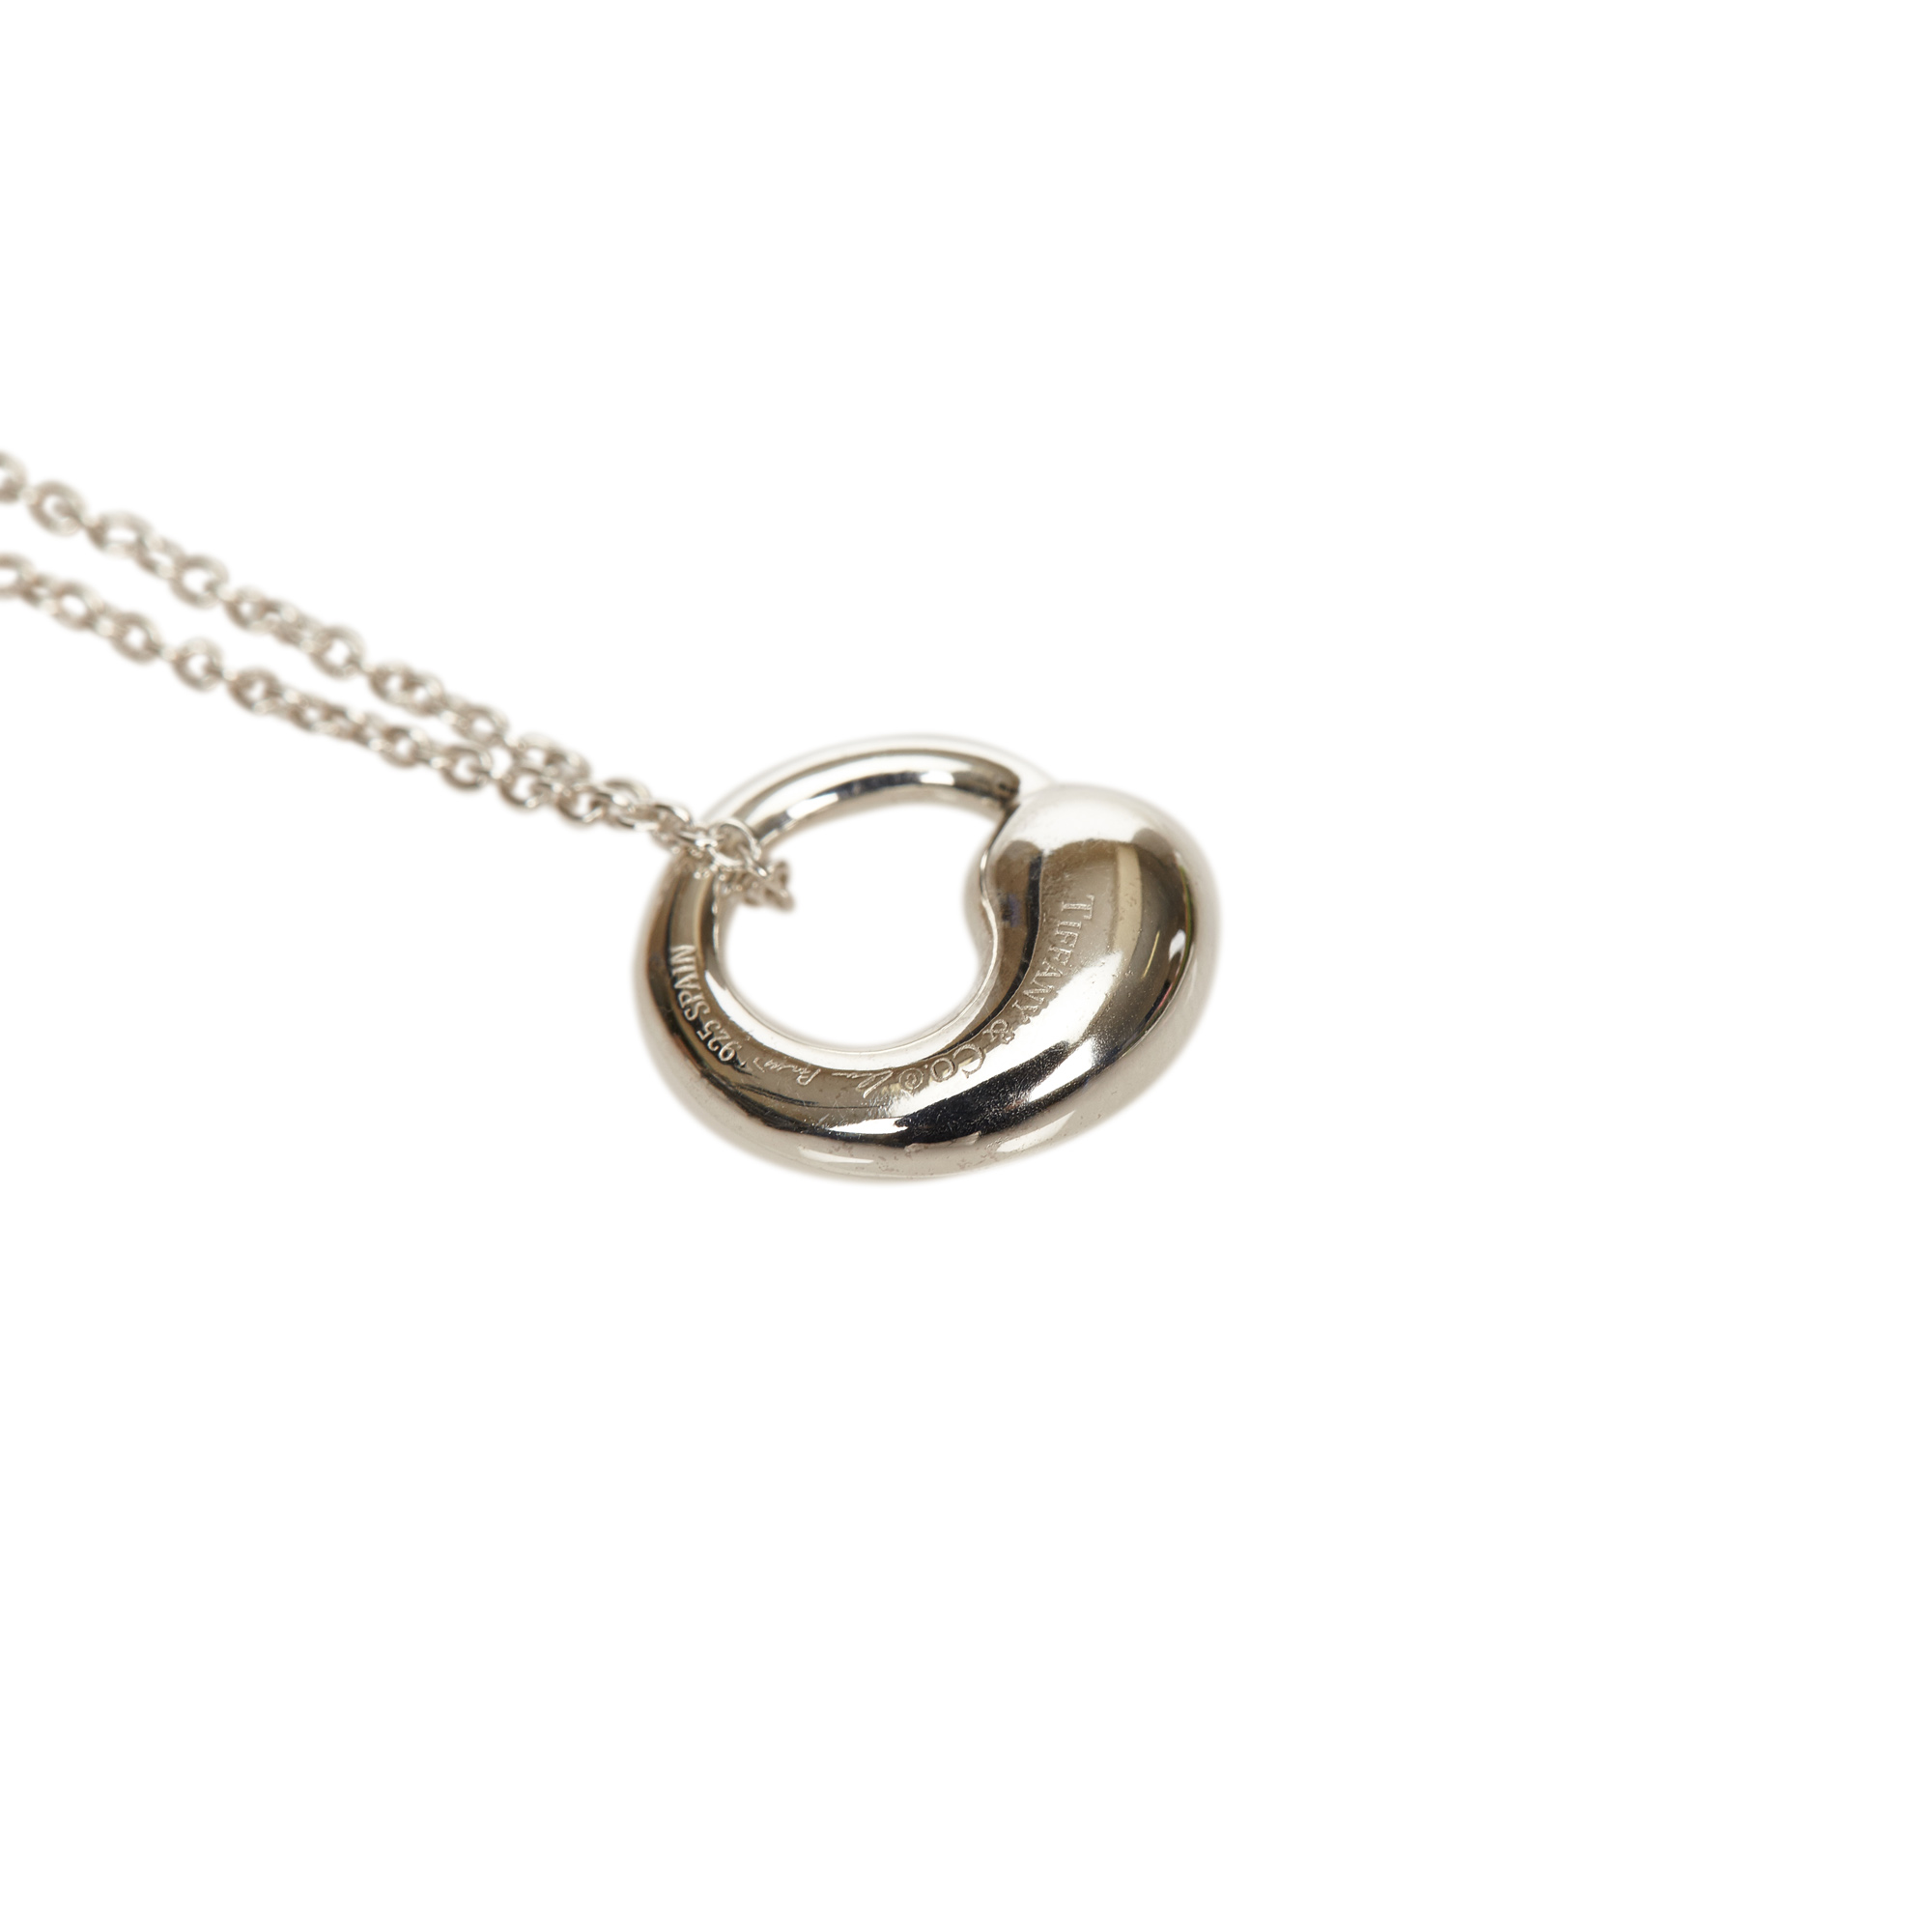 Tiffany & Co. Elsa Peretti Eternal Circle Silver Pendant Necklace